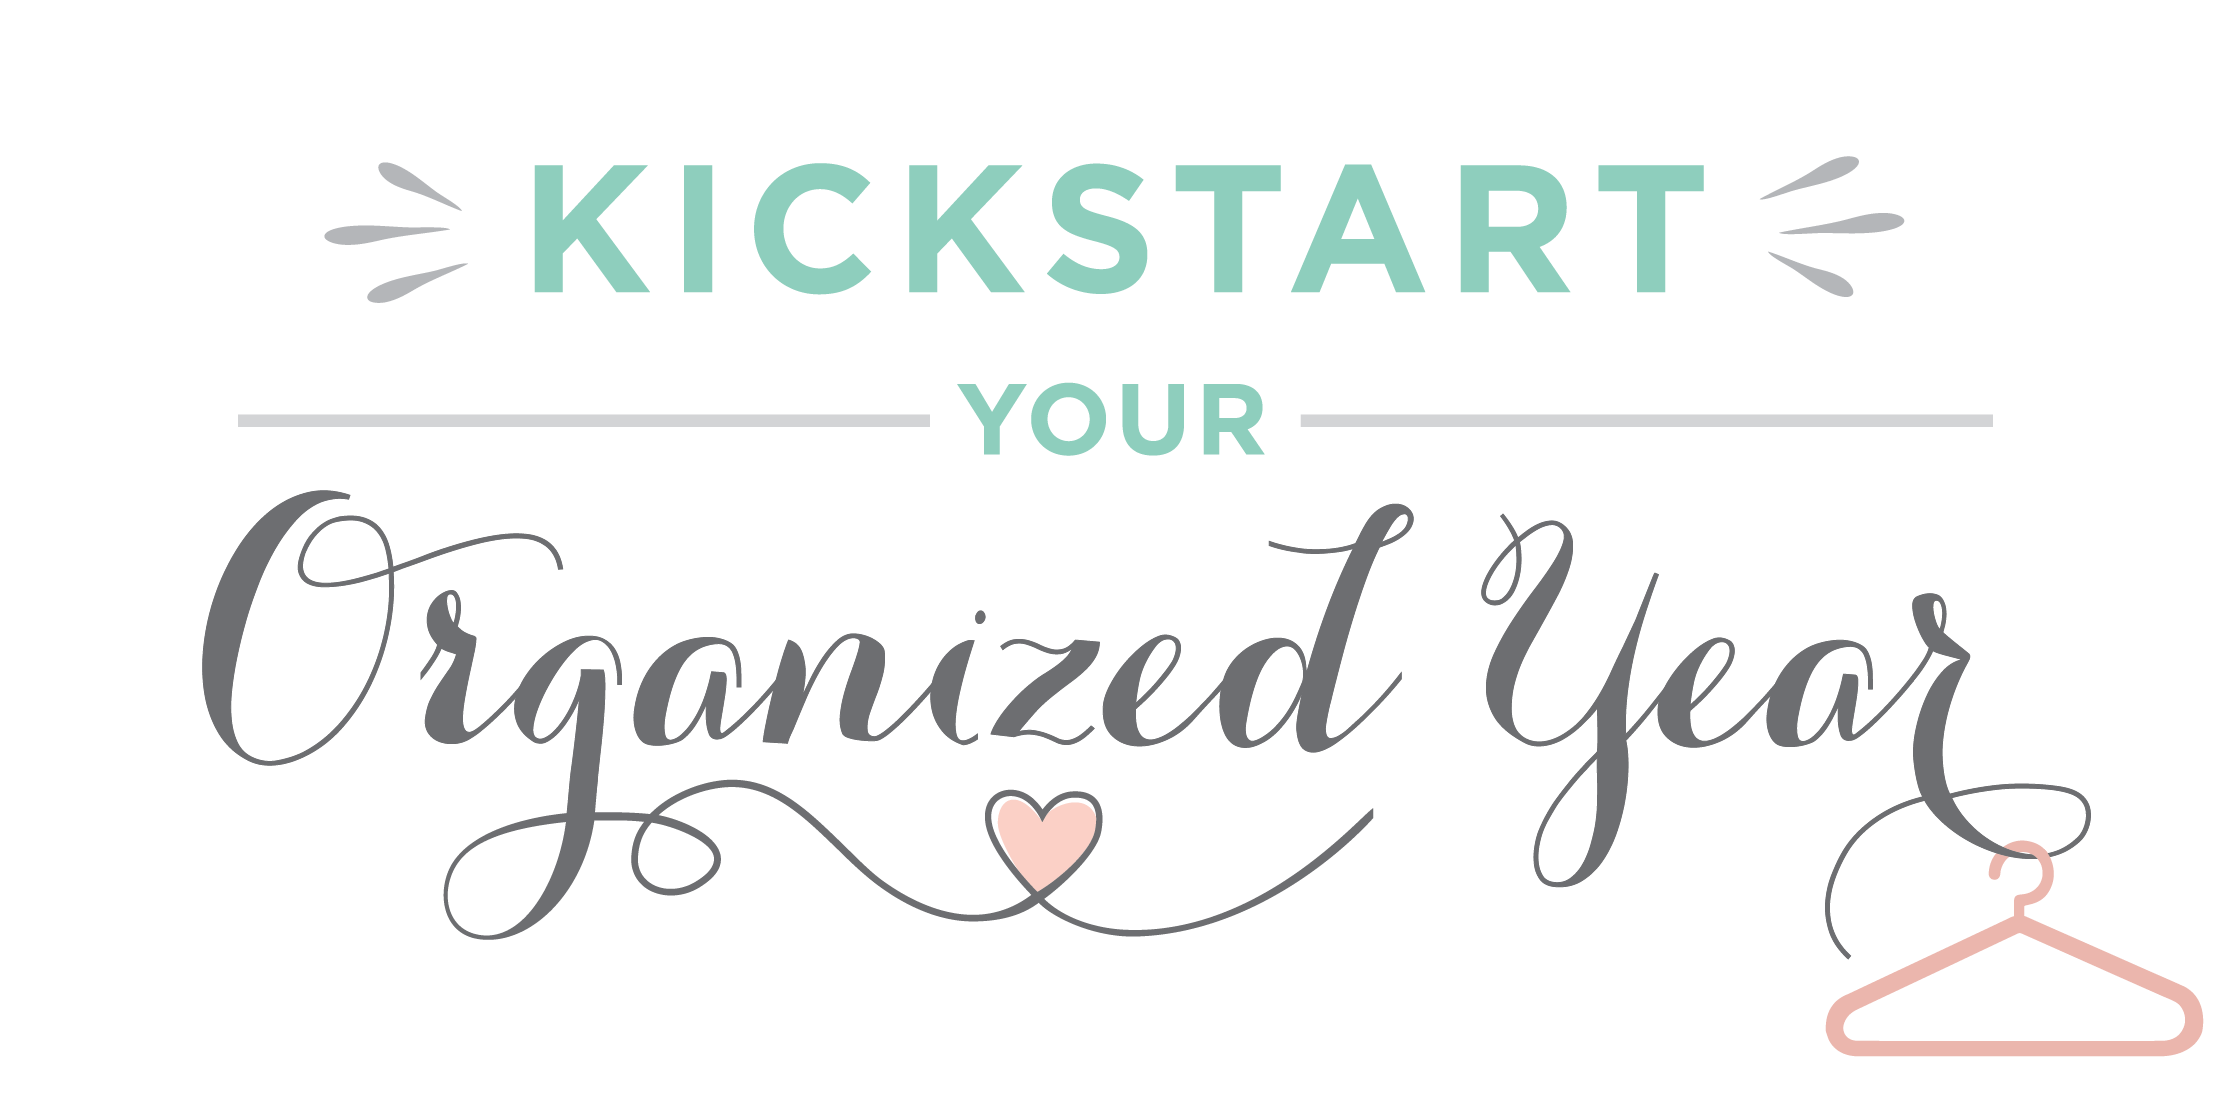 Kickstart Your Organized Year